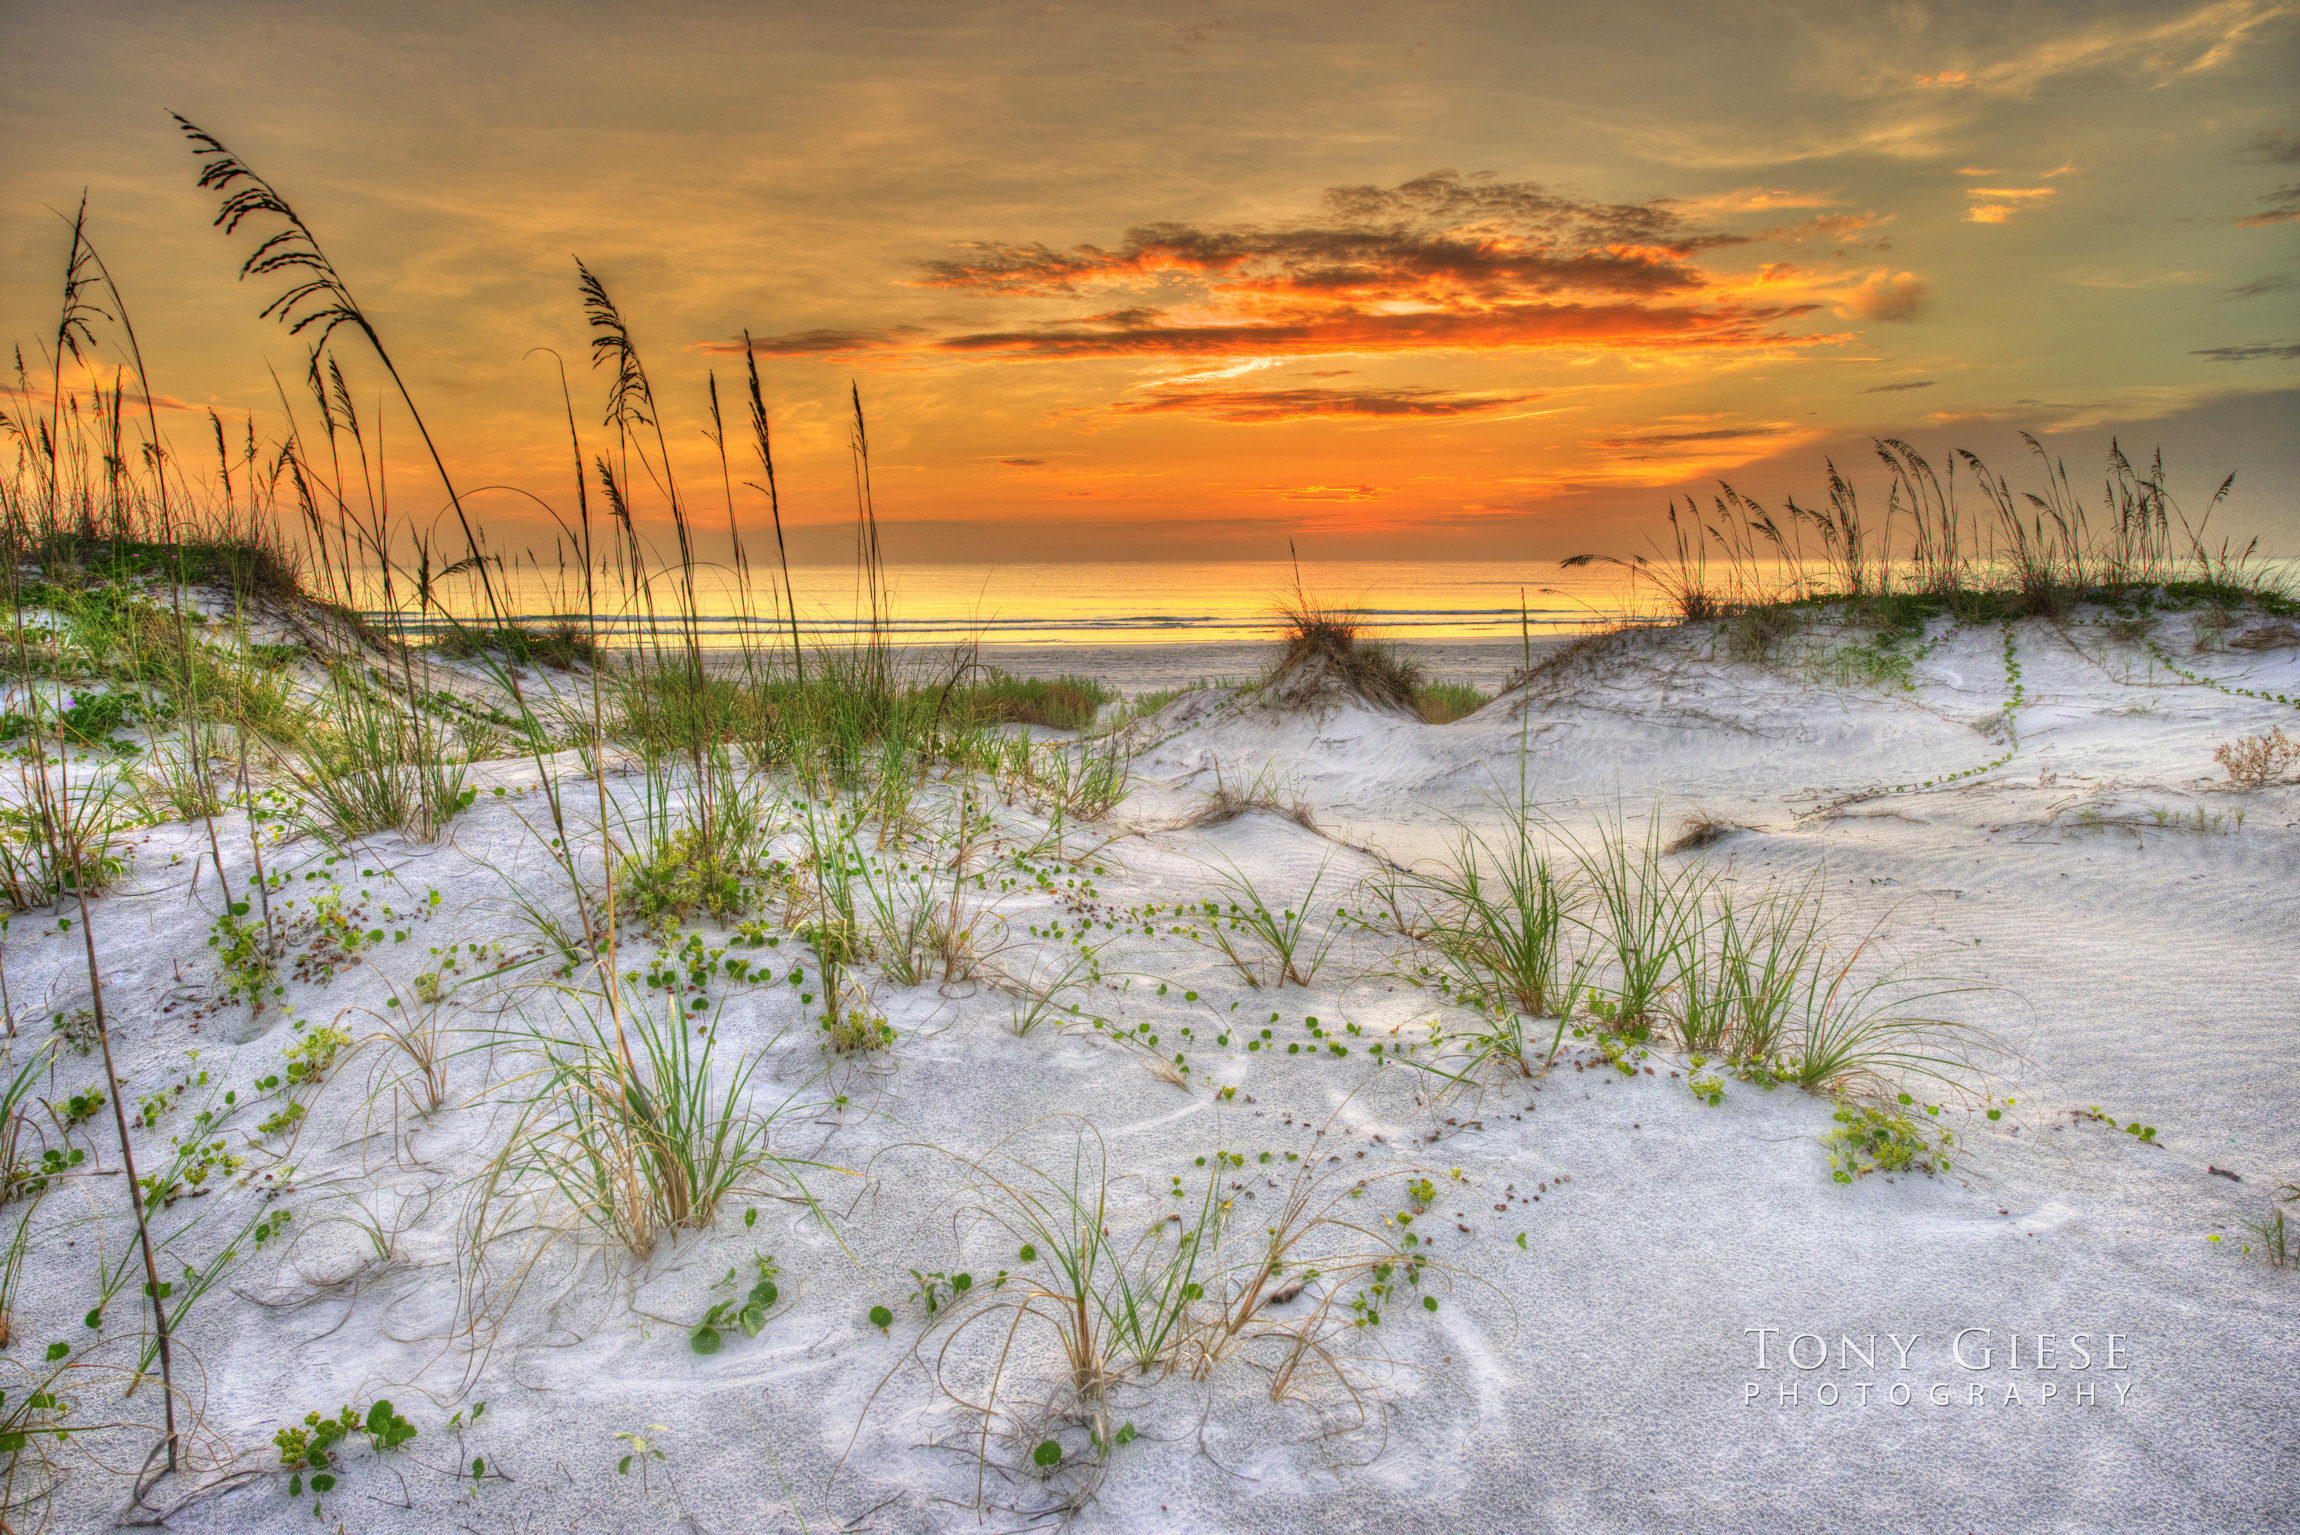 Live in the sunshine, swim in the sea, drink the wild air - Ralph Waldo Emerson. Photography by Tony Giese. Sea Oats Ponce Inlet, FLorida.